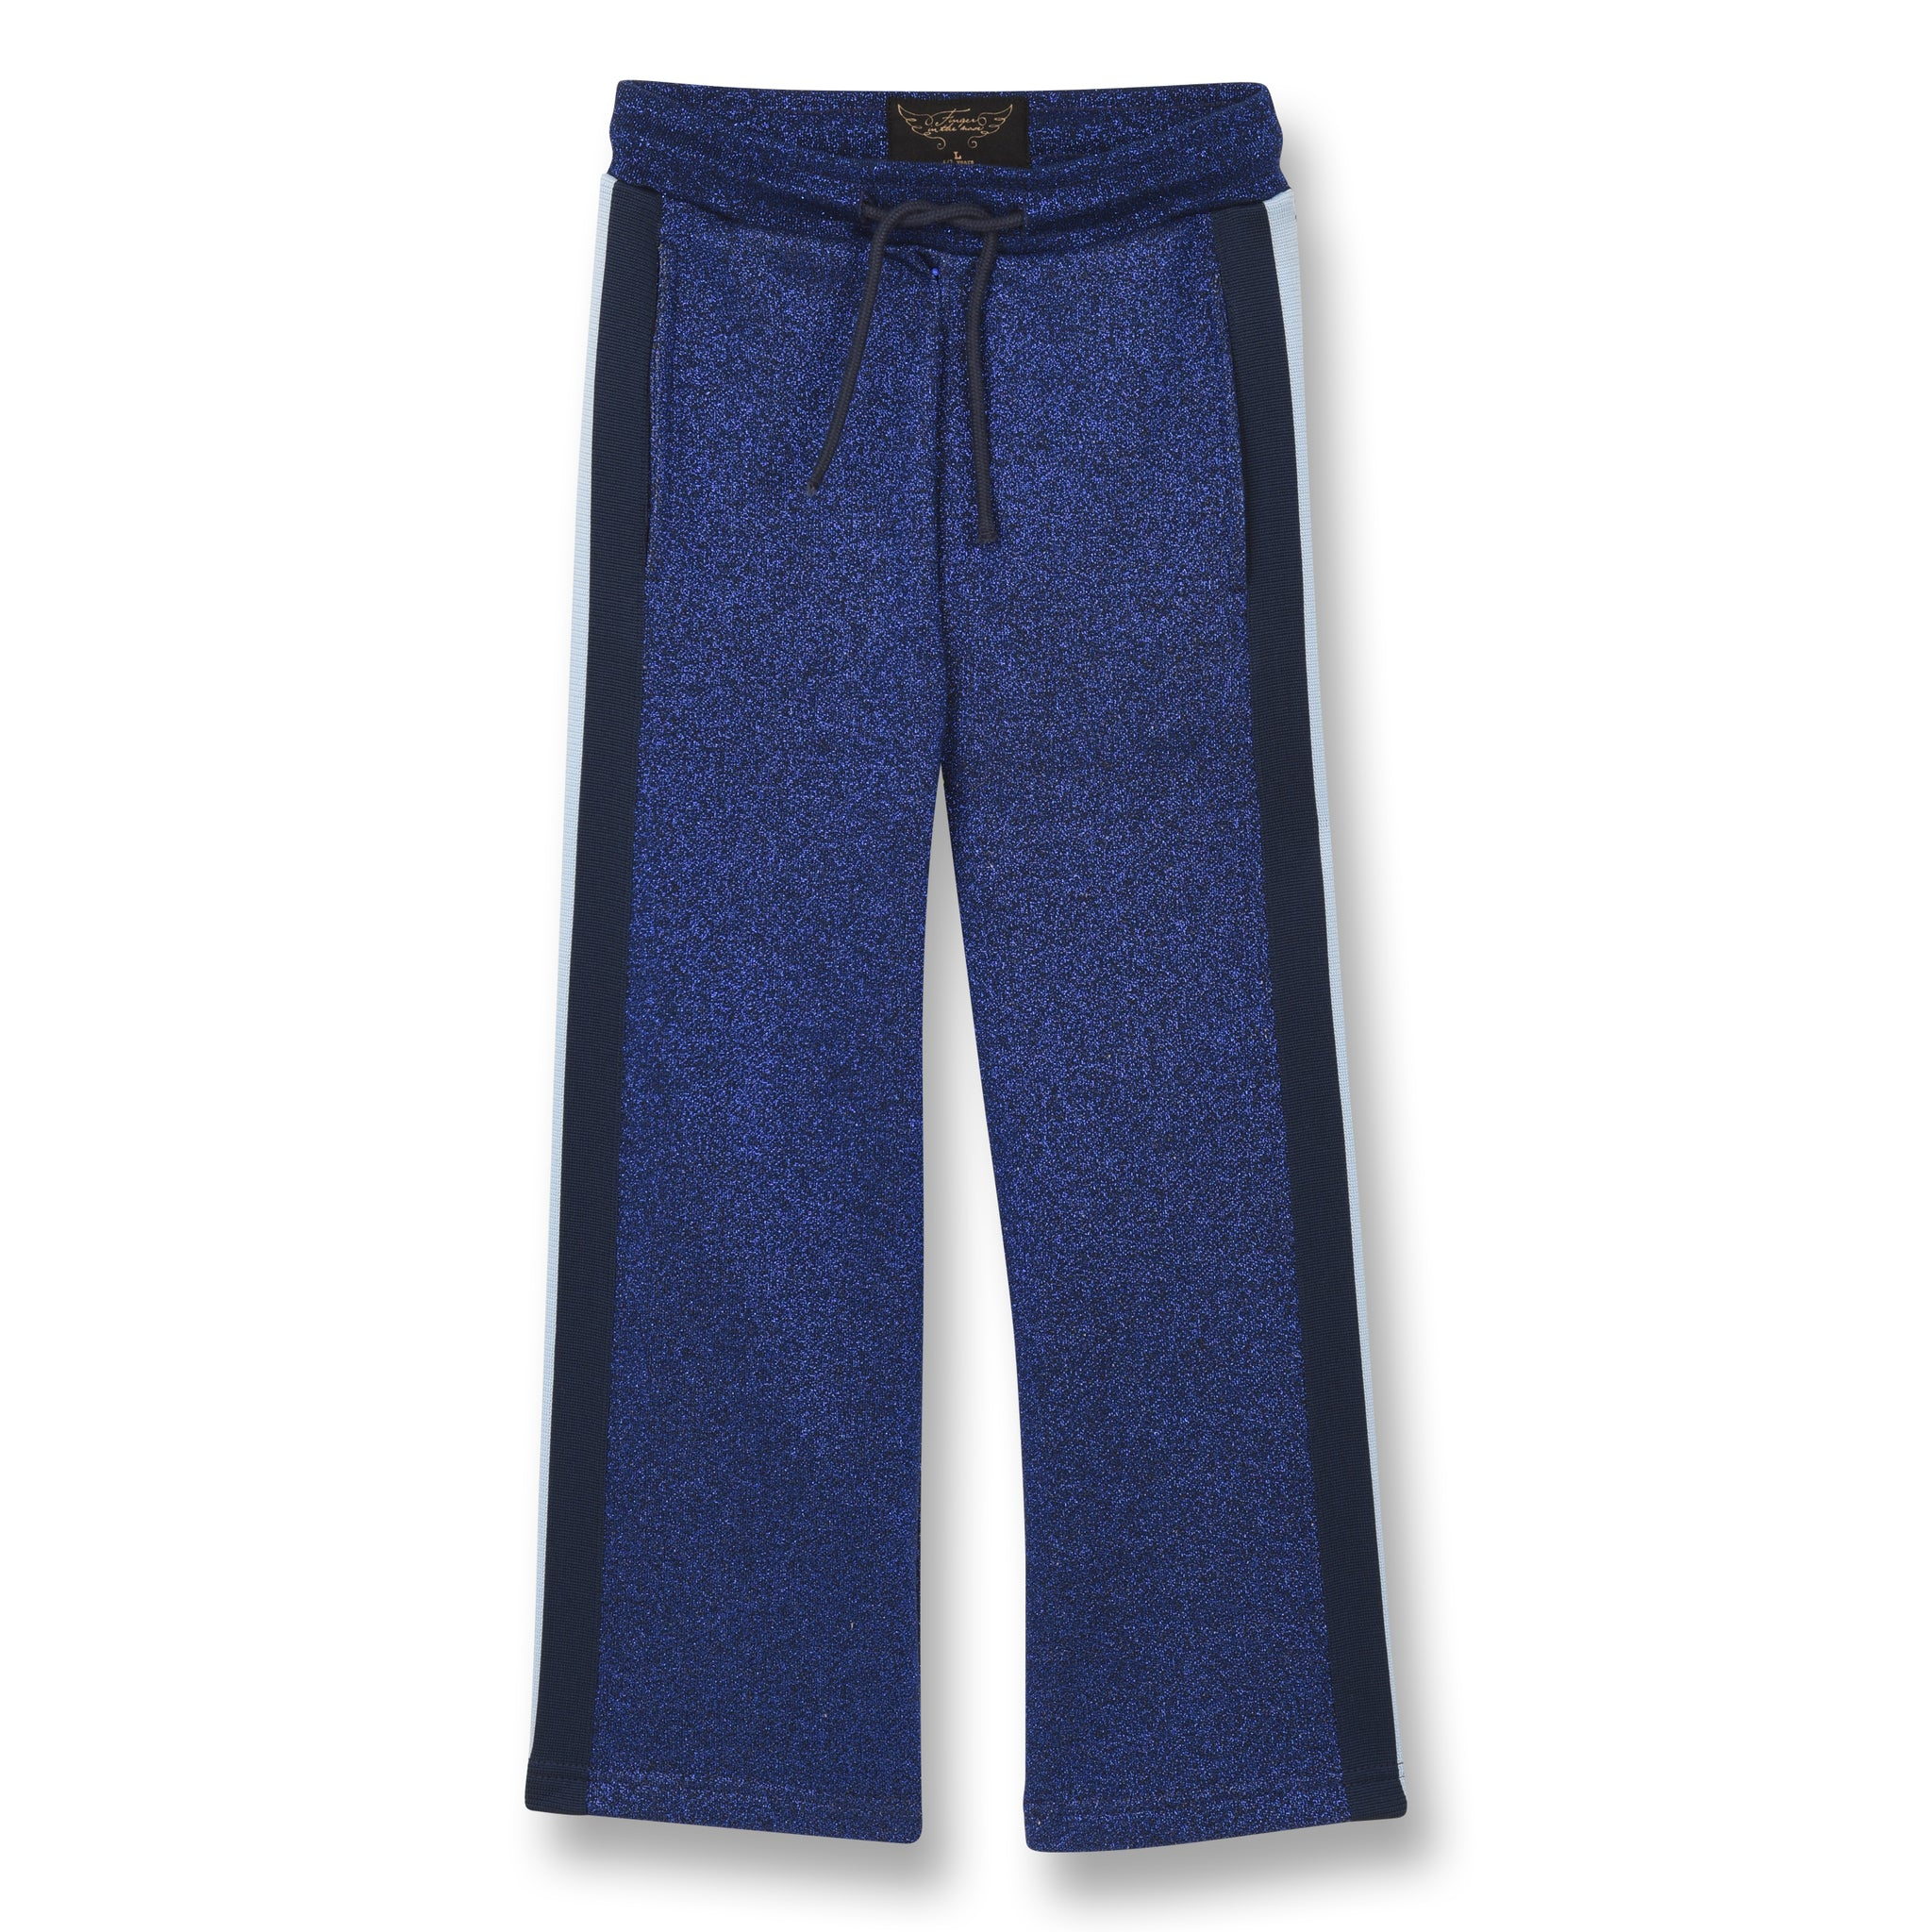 REY Glitter Blue - Wide Jogging Pants 1